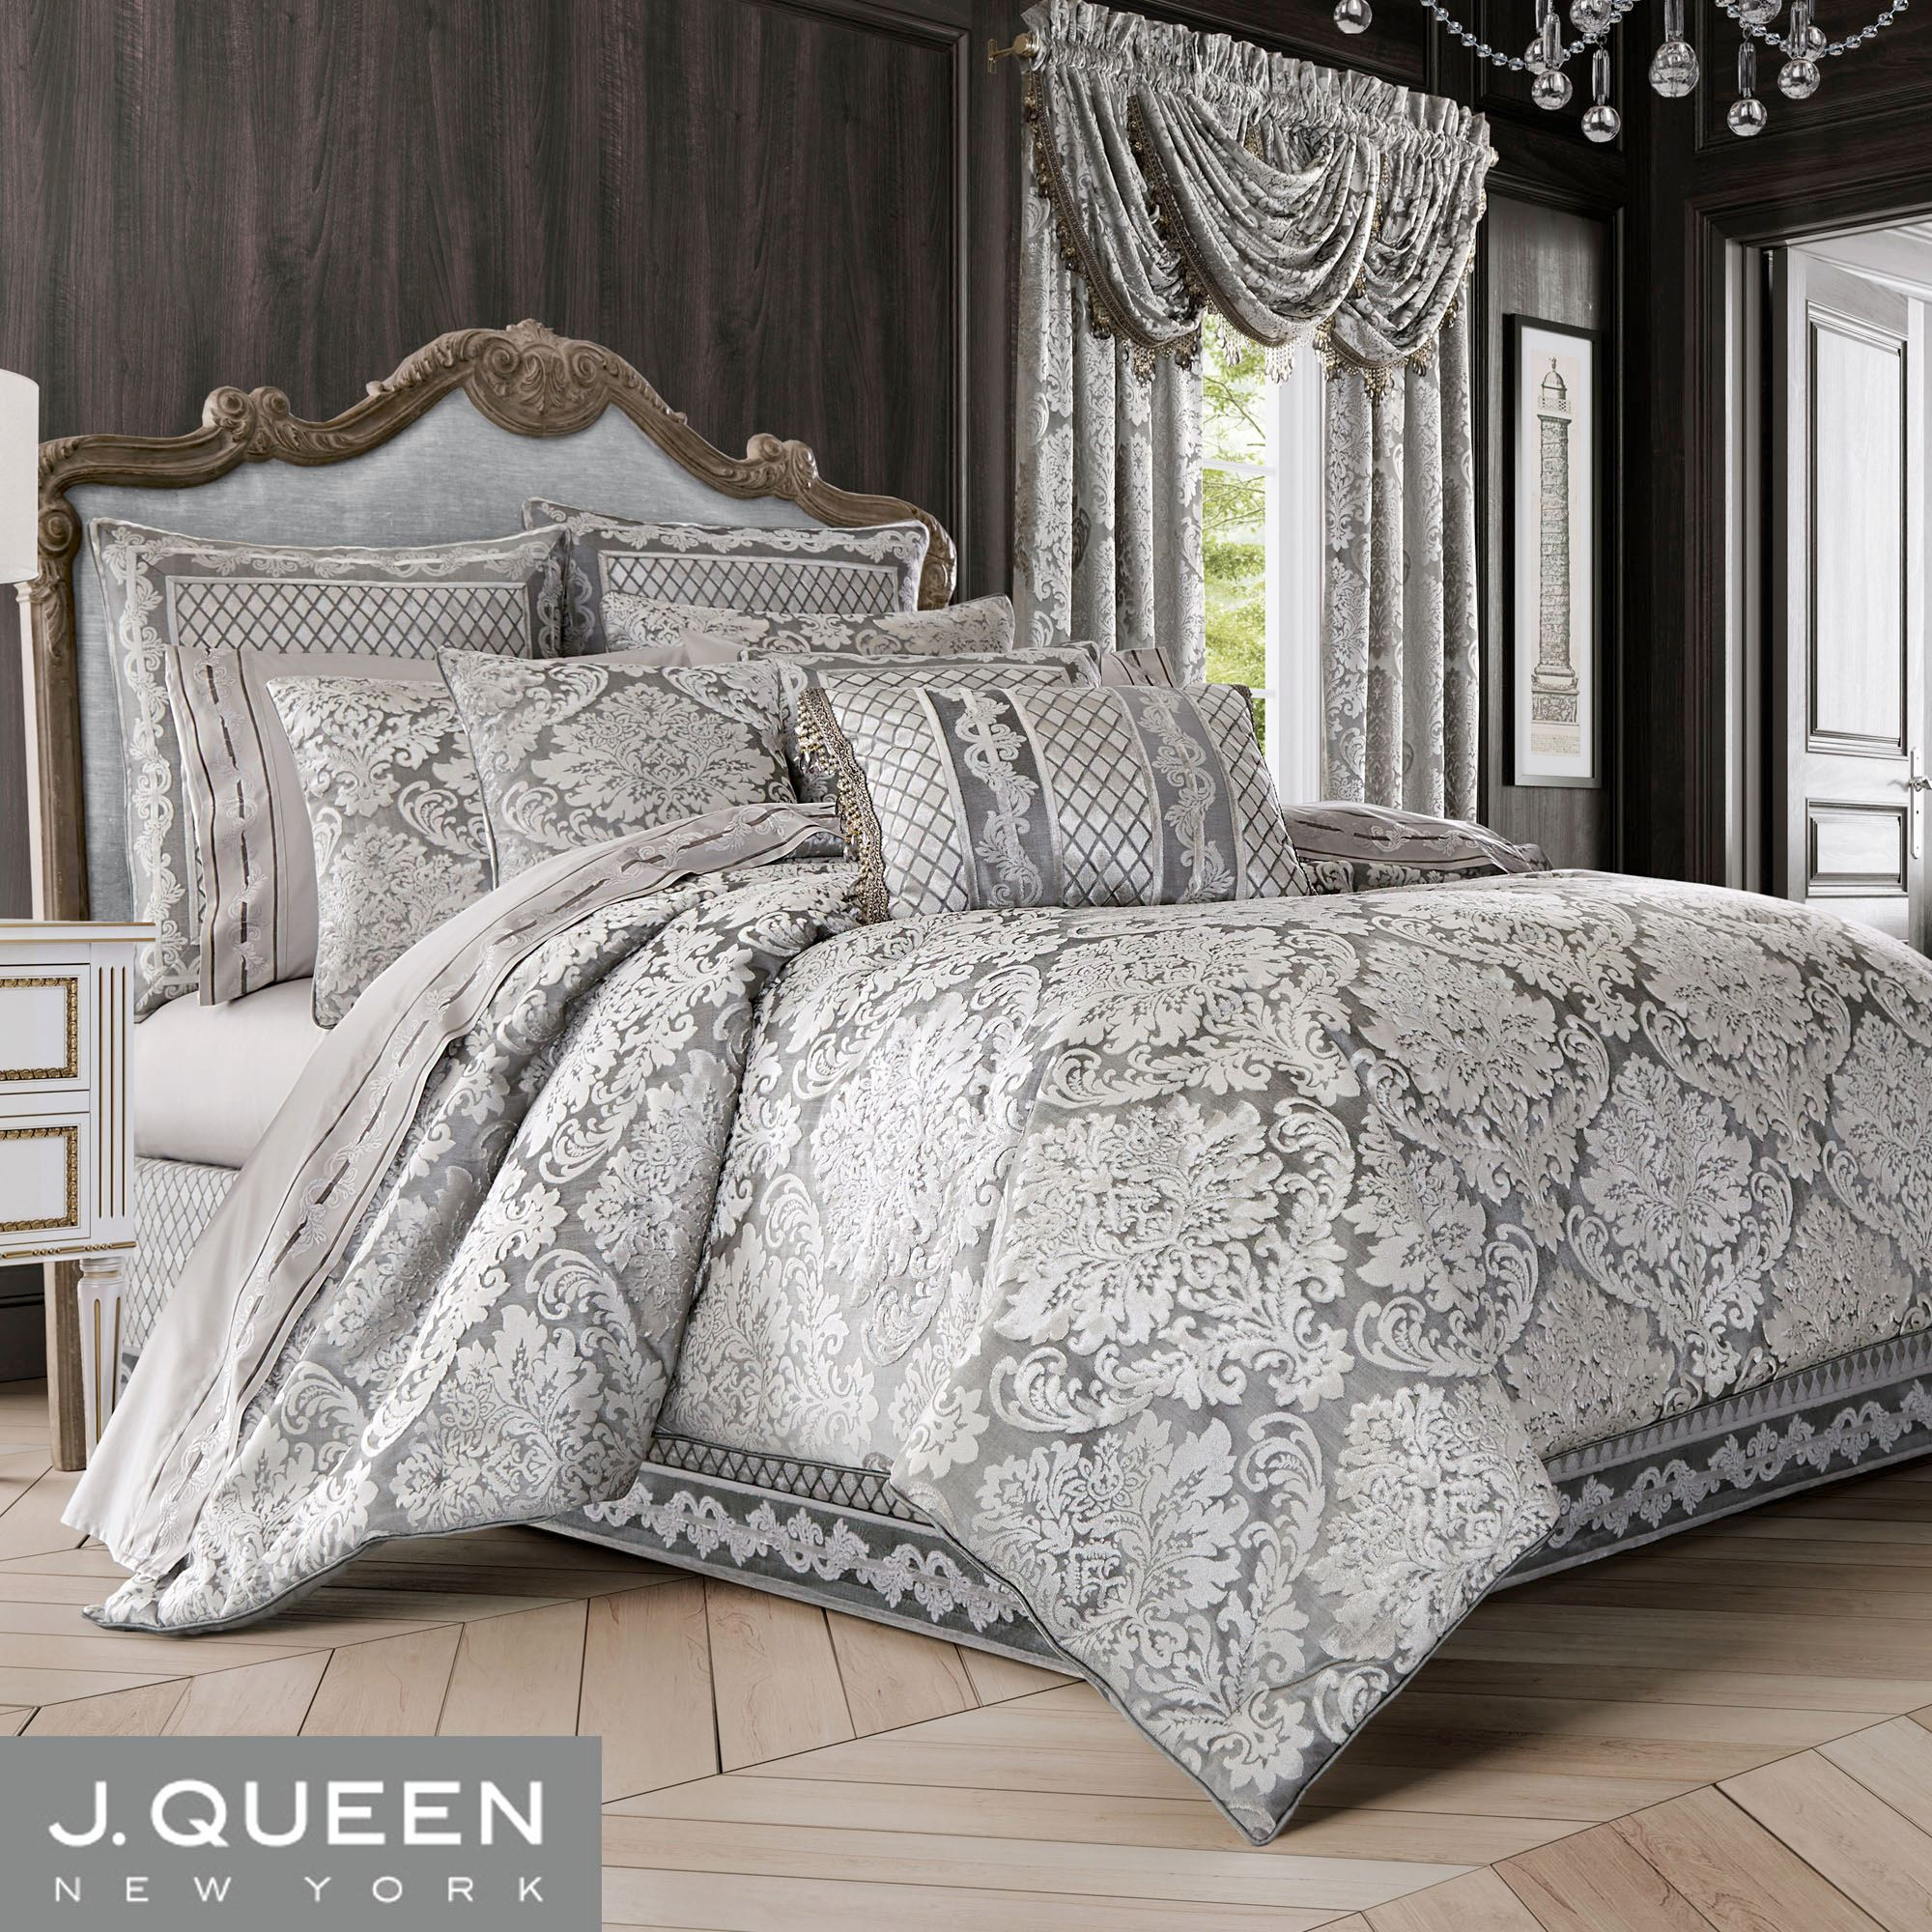 Bel Air Silver Velveteen Damask Comforter Bedding By J